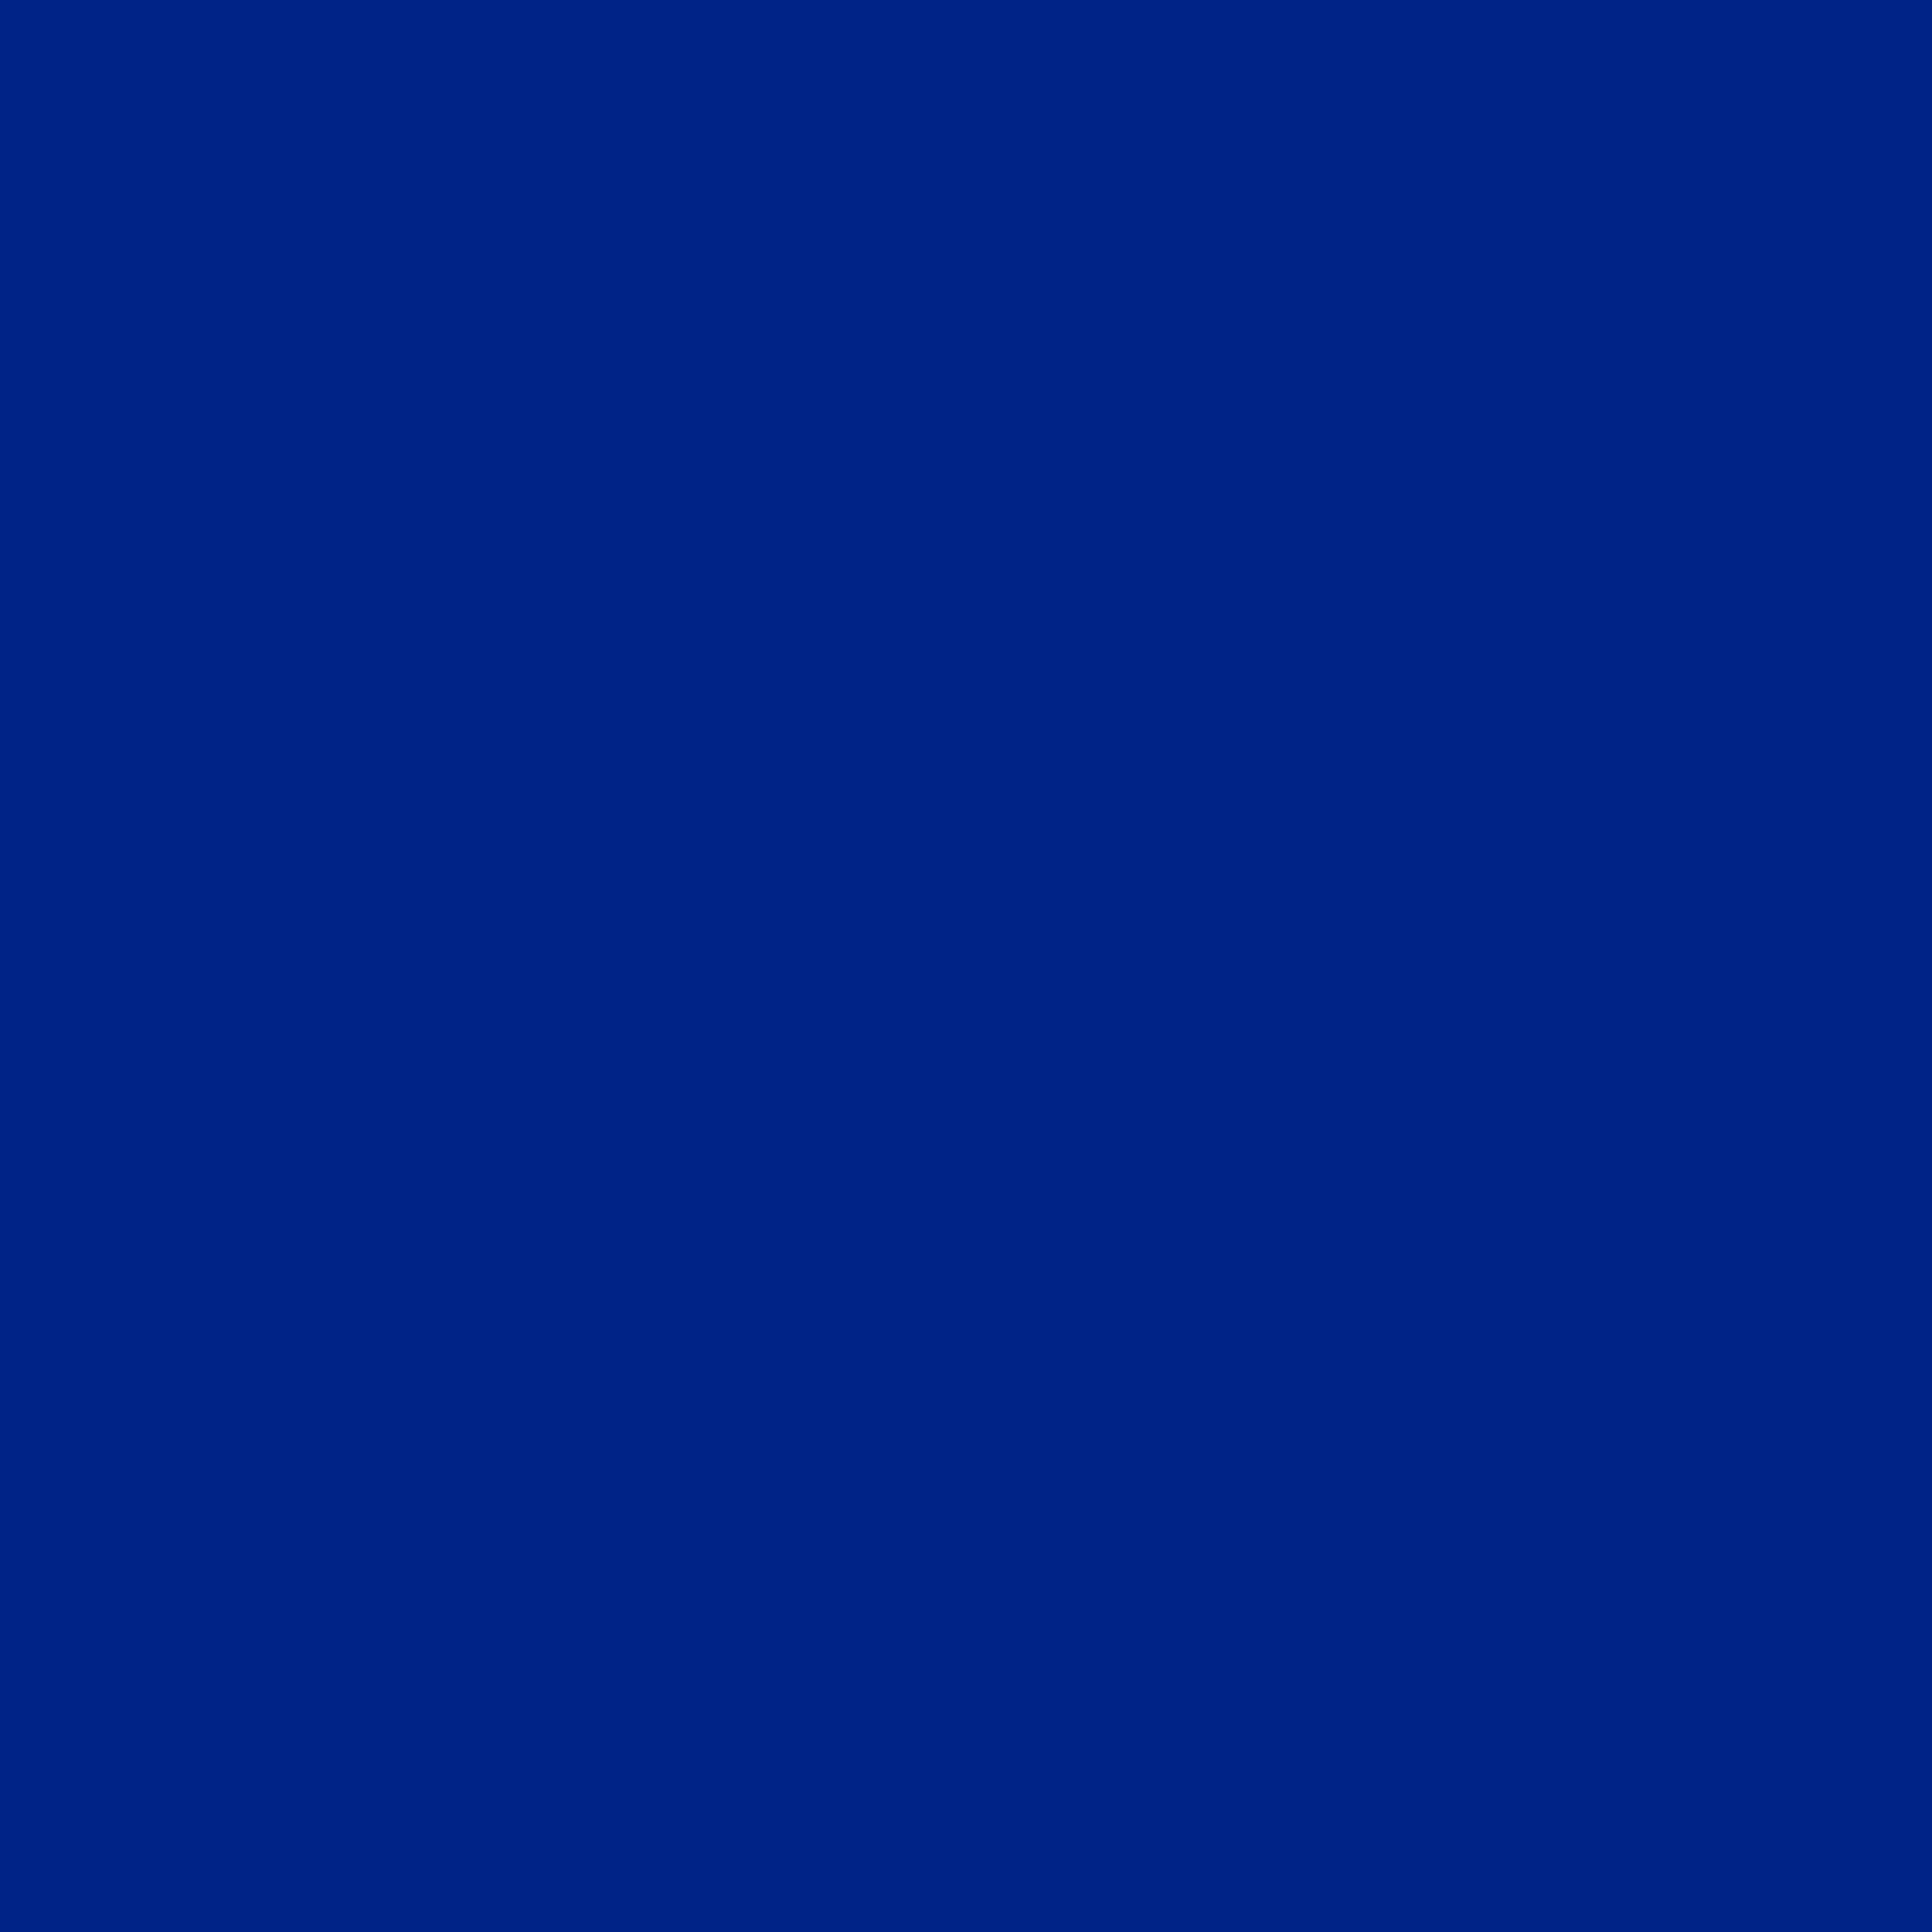 2732x2732 Resolution Blue Solid Color Background